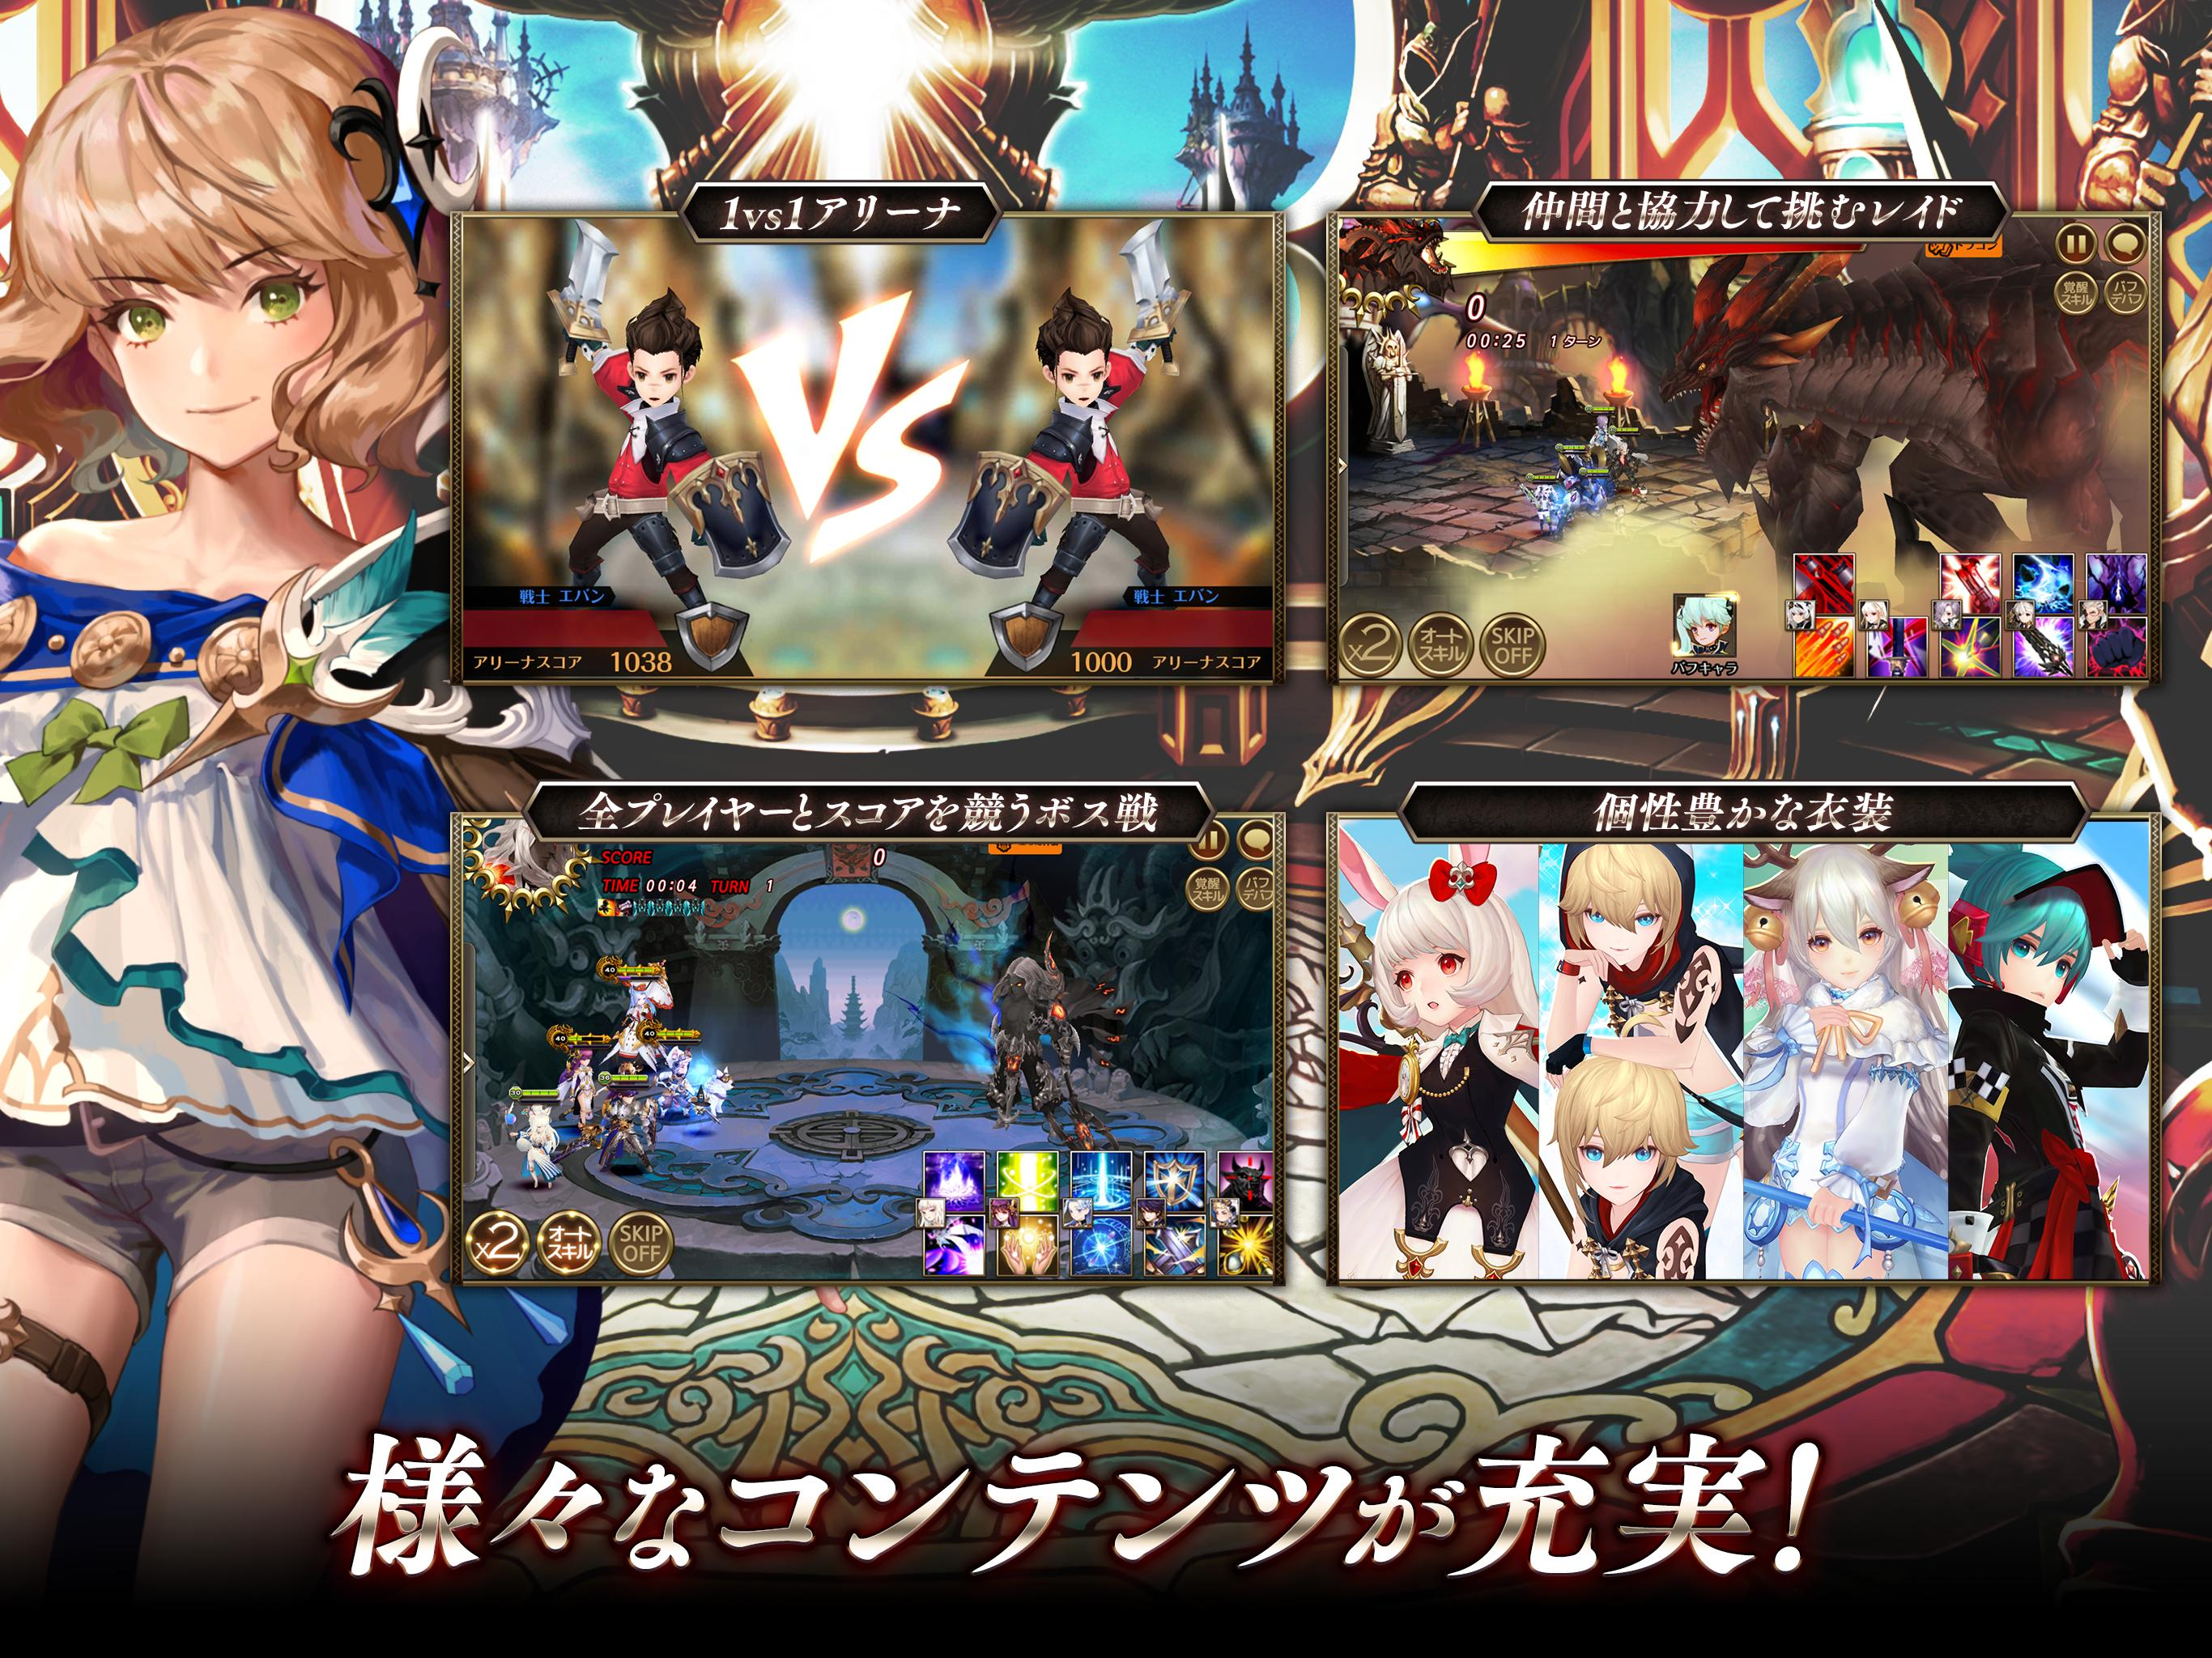 セブンナイツ(Seven Knights) for Android - APK Download